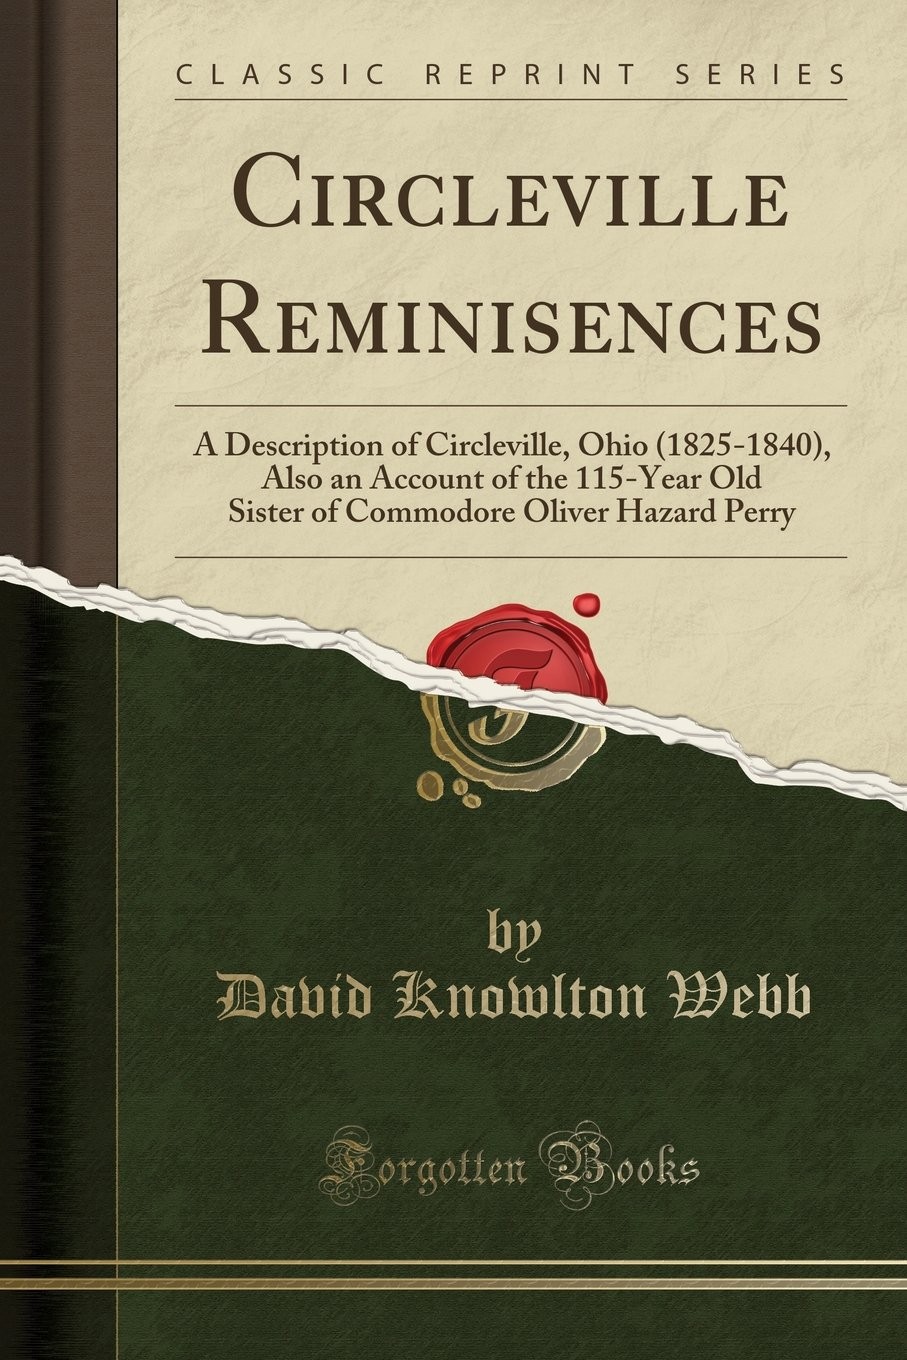 Circleville Reminisences: A Description of Circleville, Ohio (1825-1840), Also an Account of the 115-Year Old Sister of Commodore Oliver Hazard Perry (Classic Reprint)